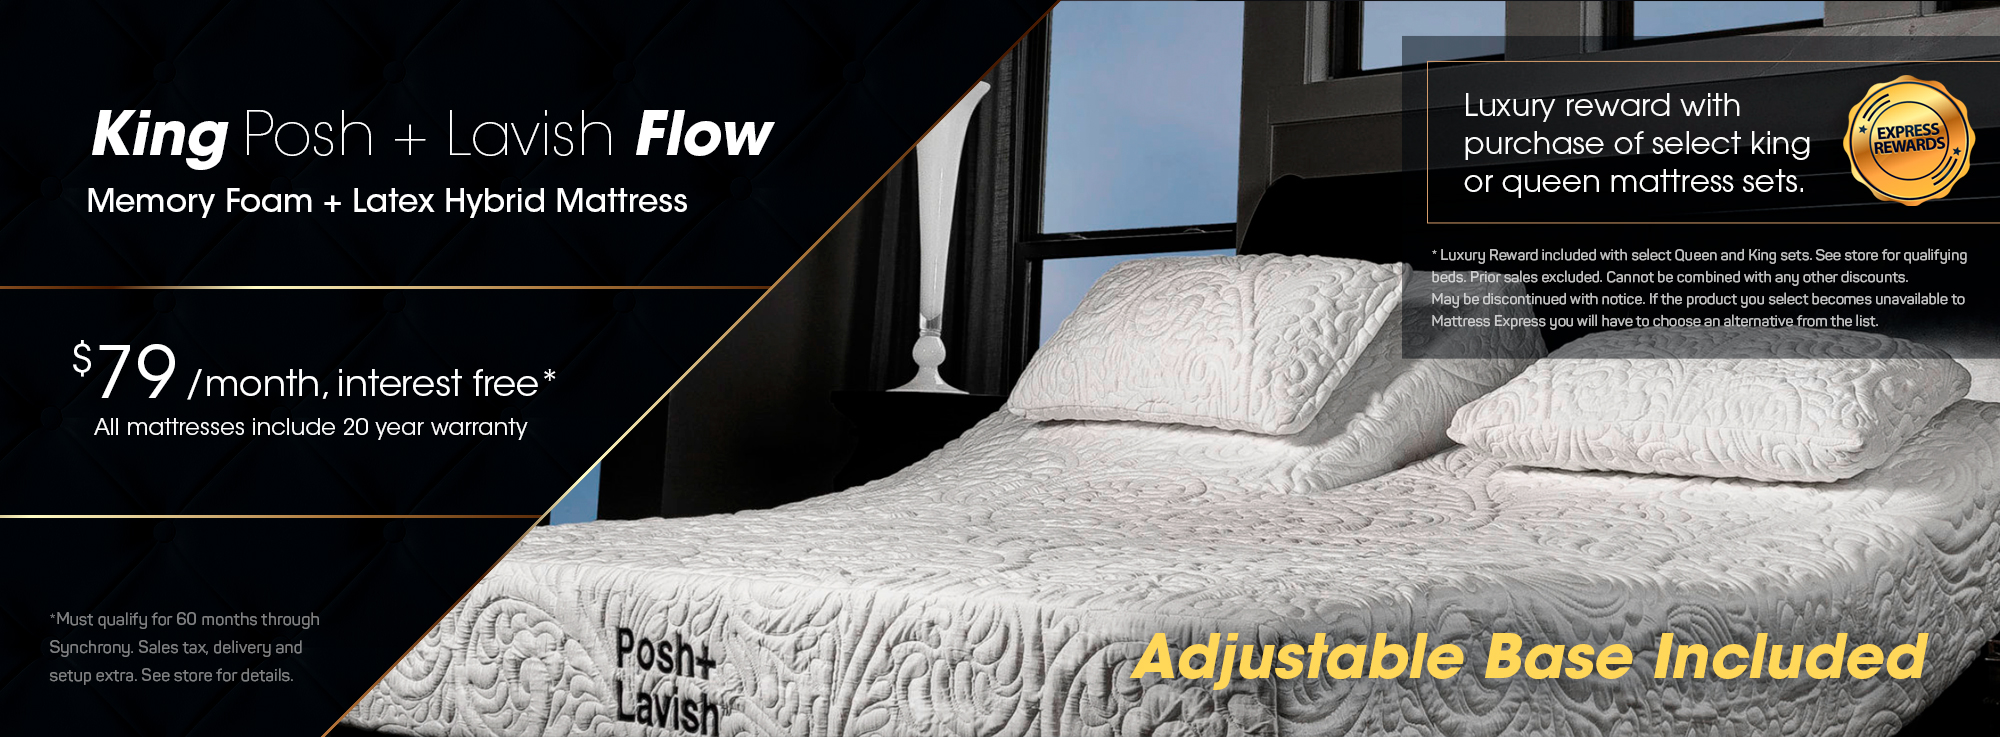 Mattresses Bedding And More Mattress Express Luxury For Less